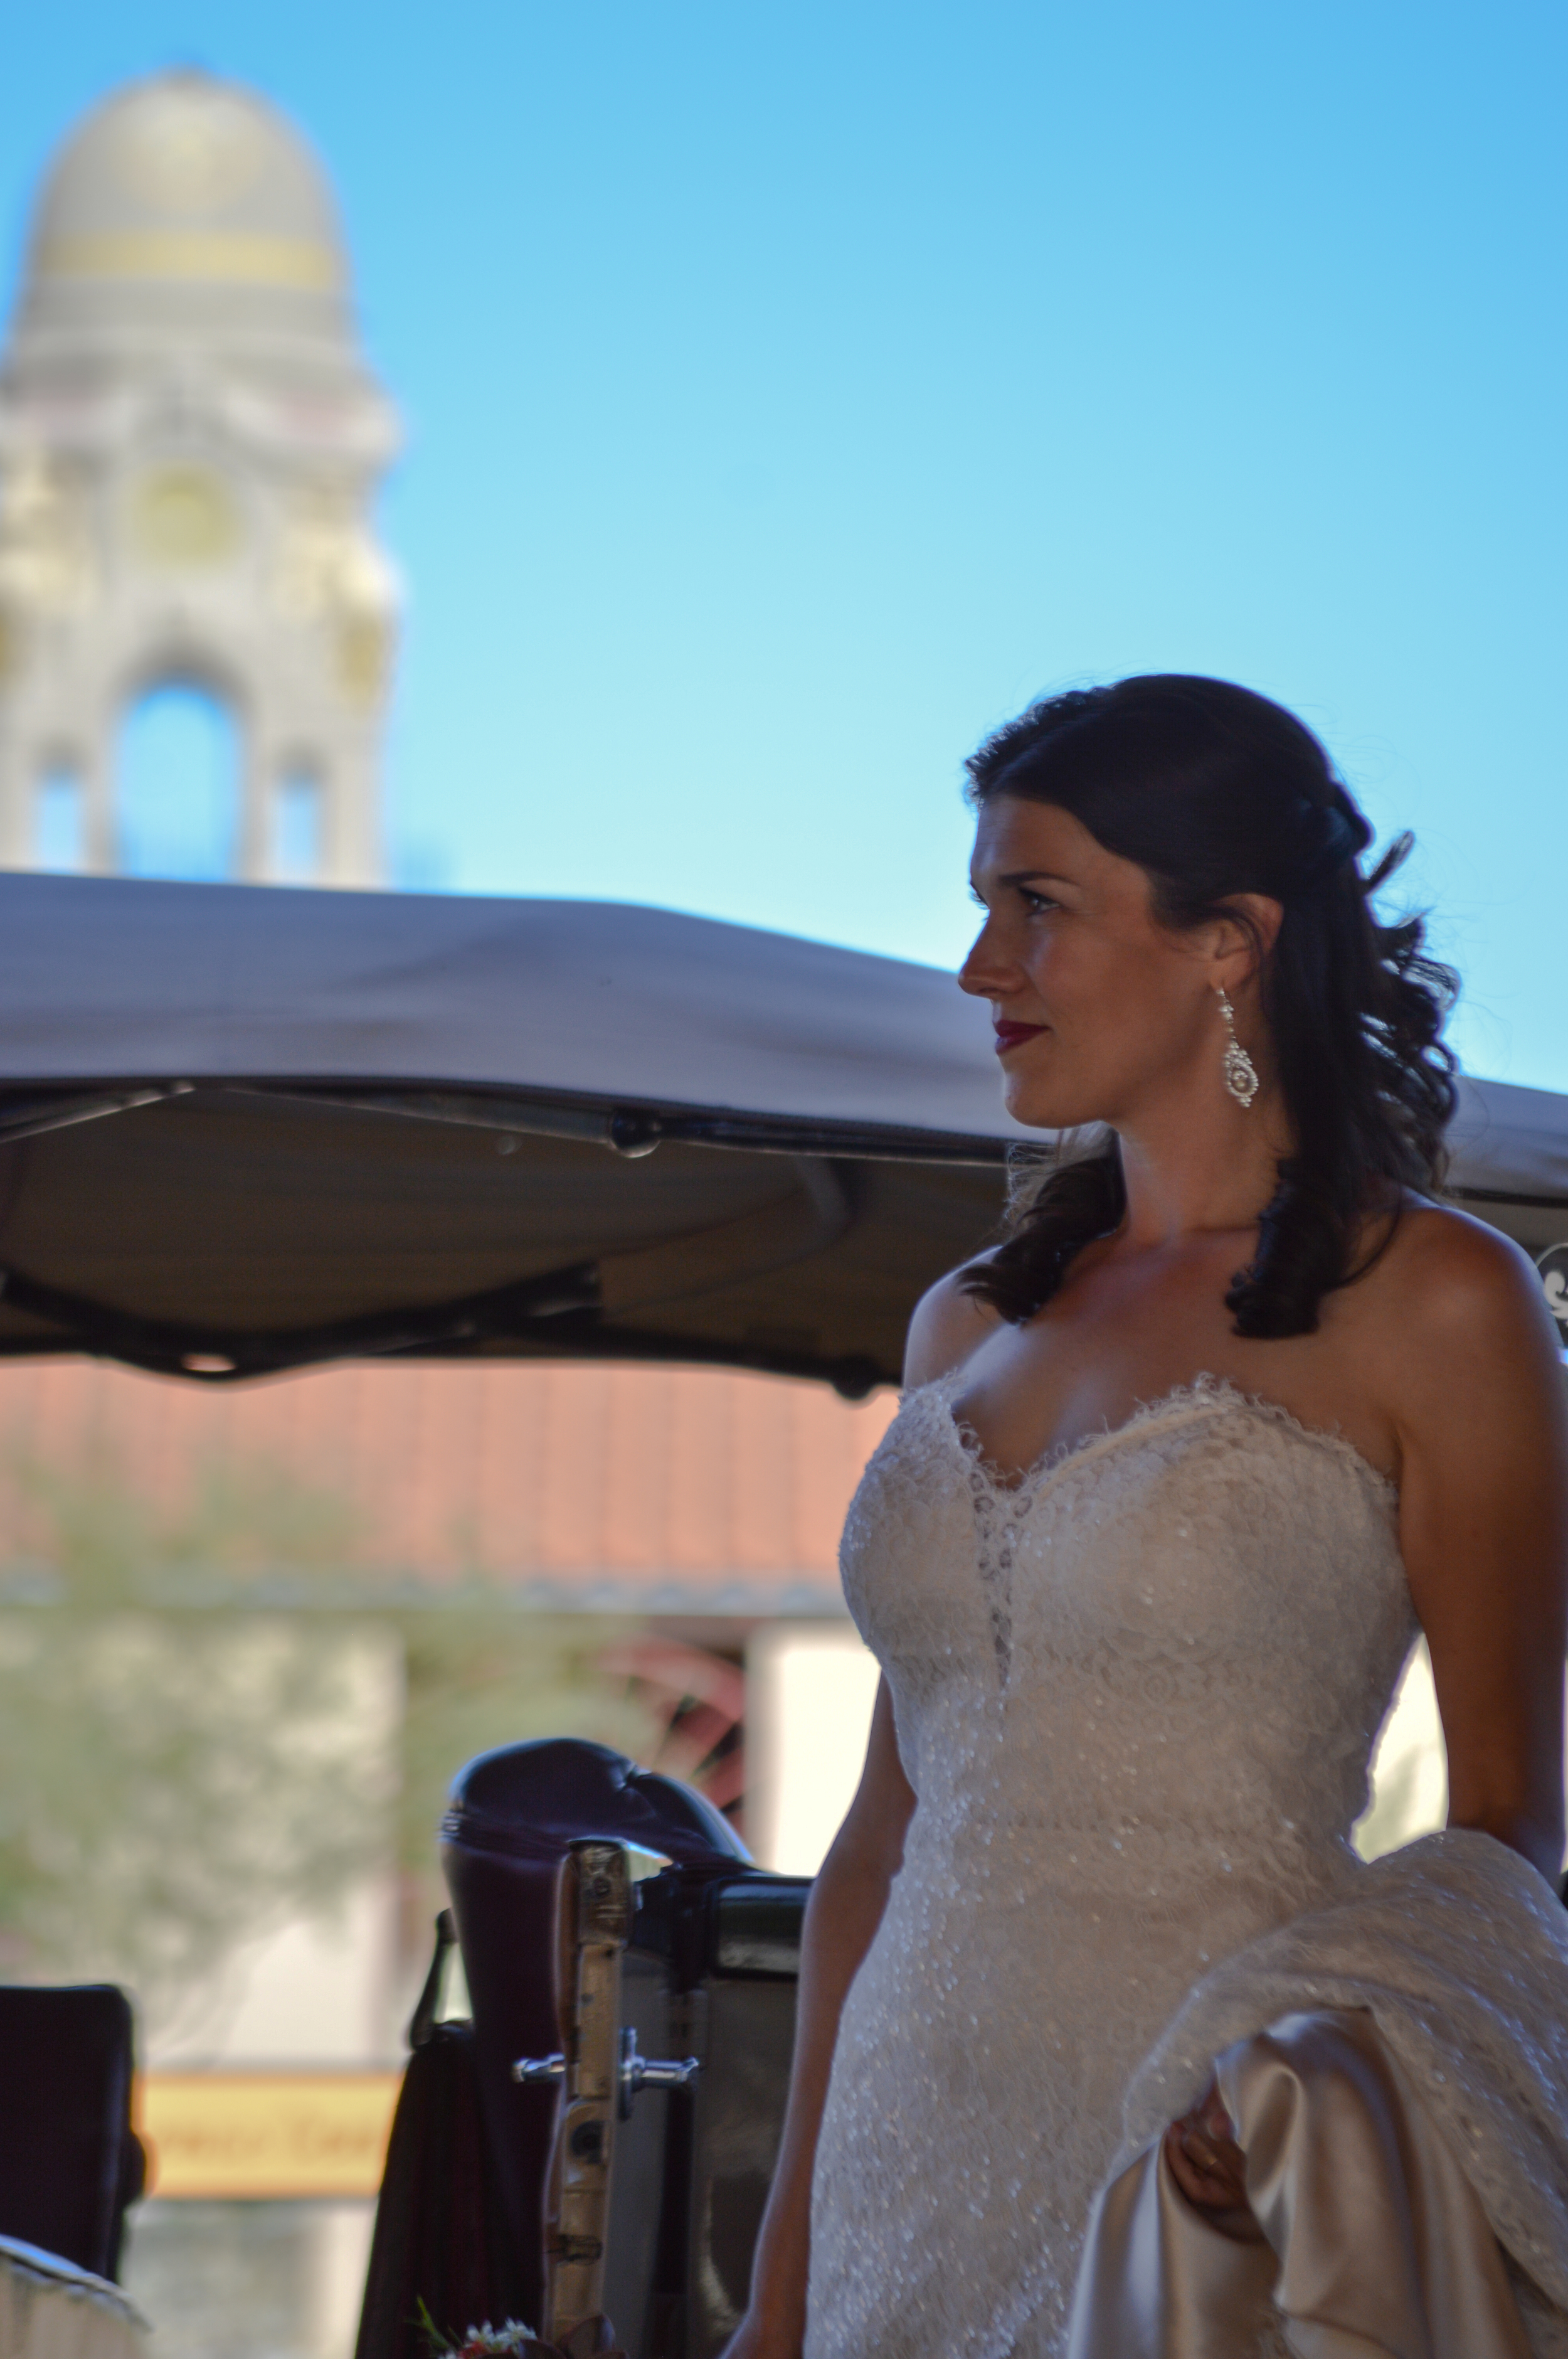 A bride in our courtyard before her wedding ceremony